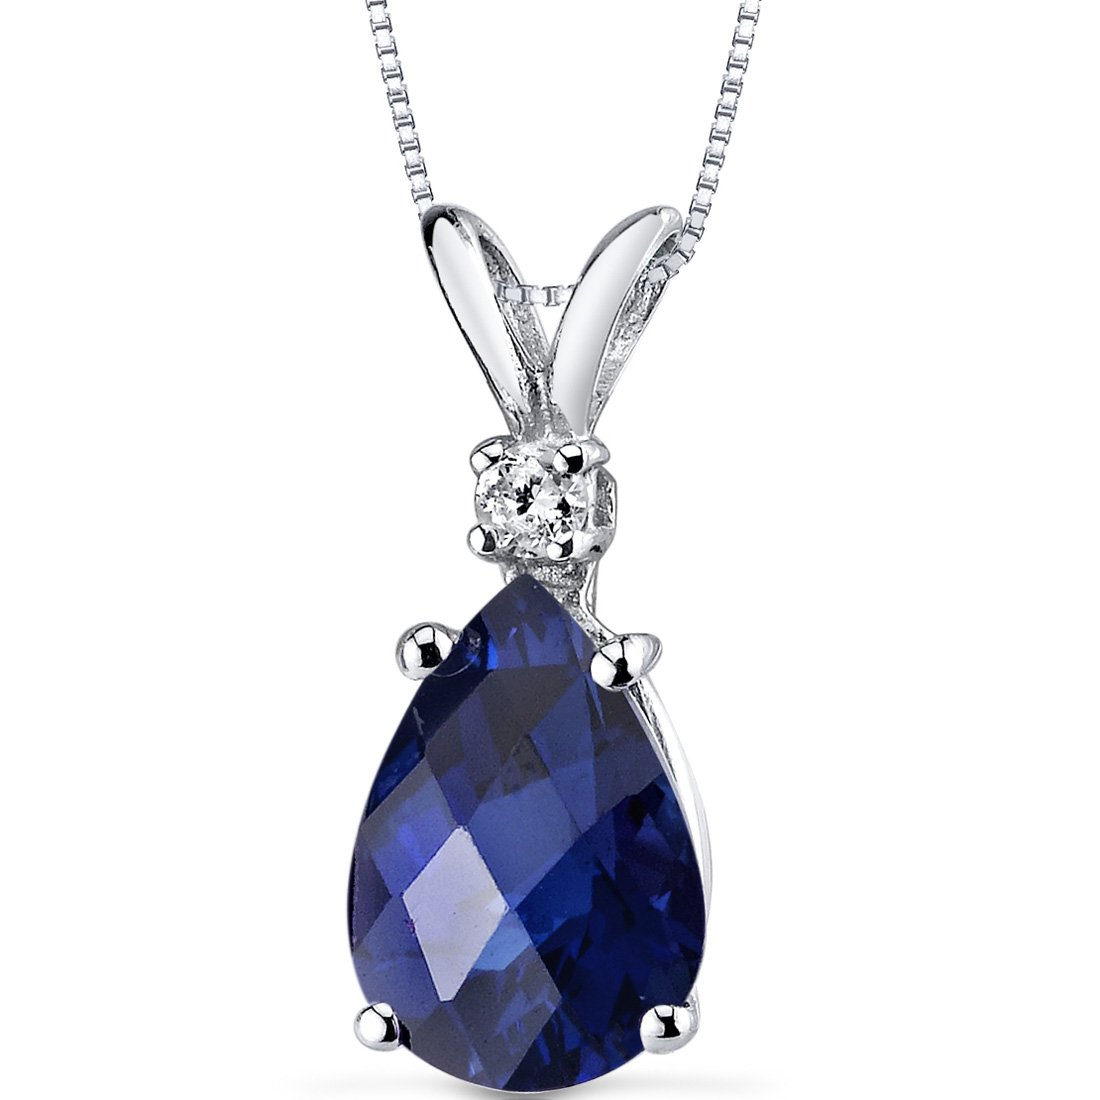 14 Karat White Gold Pear Shape 2.50 Carats Created Blue Sapphire Diamond Pendant